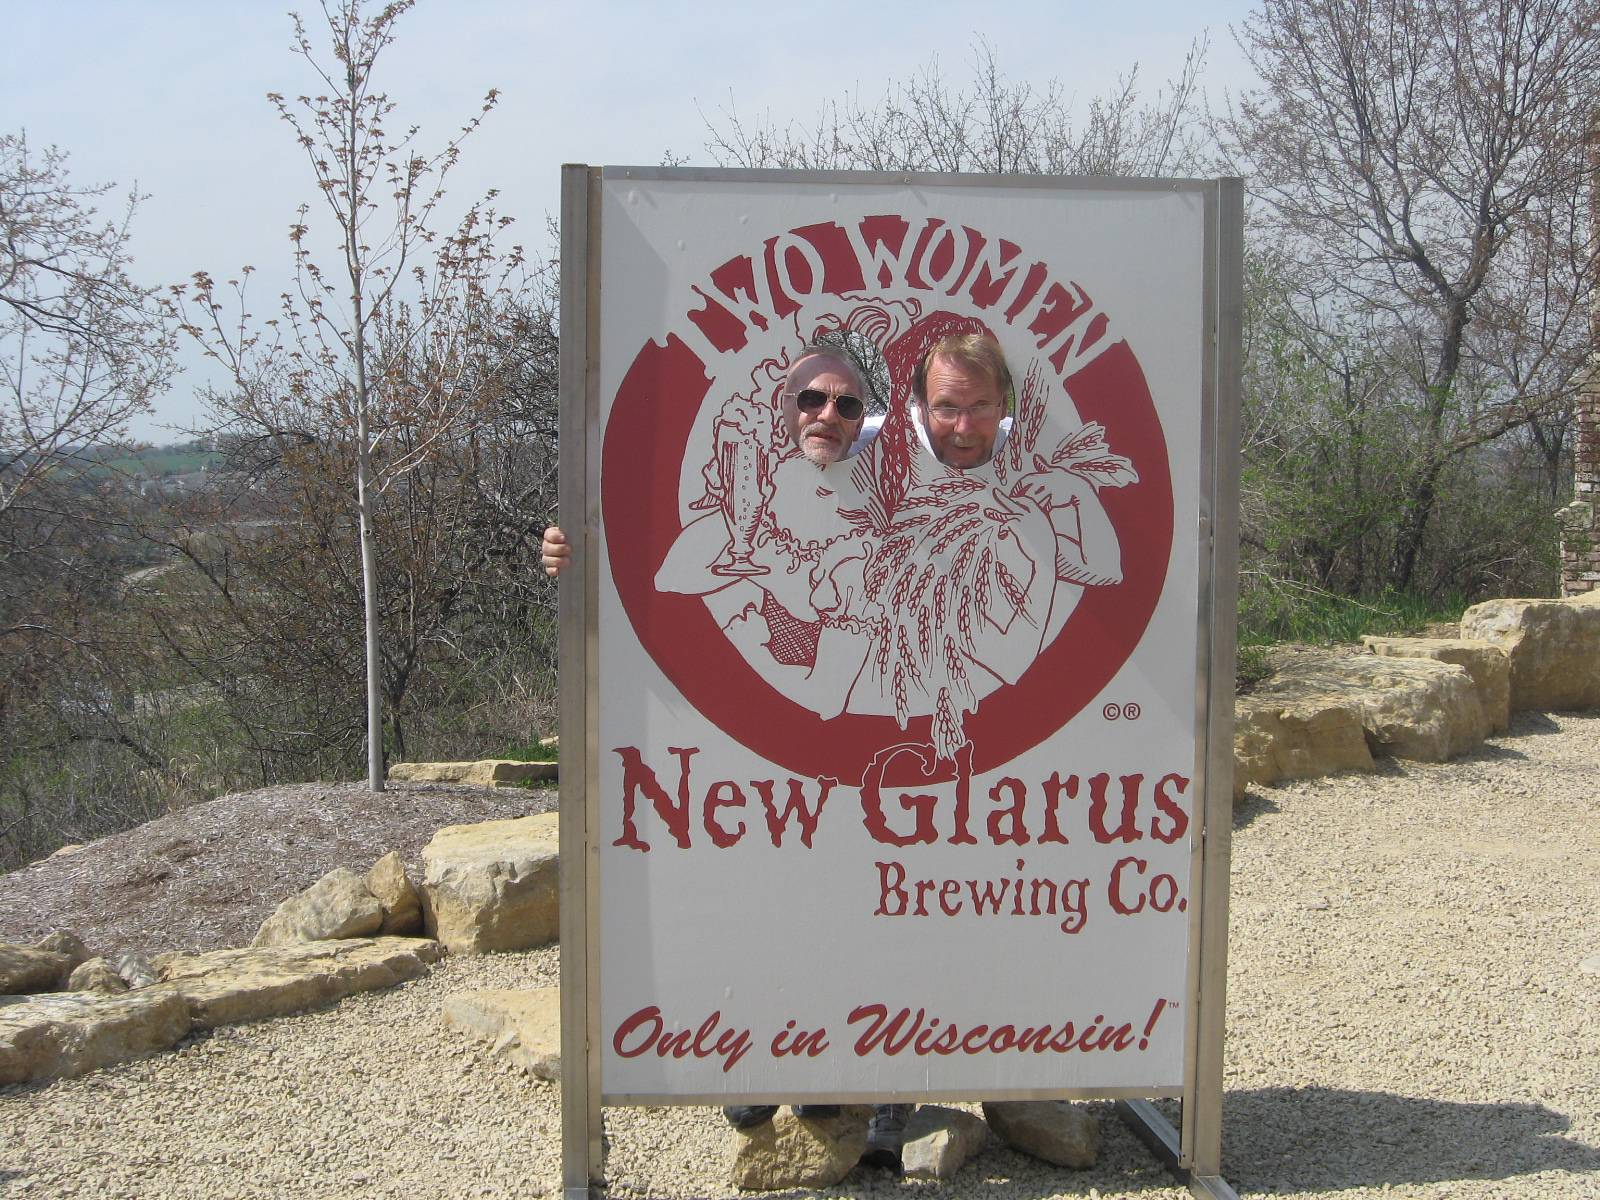 At the New Glarus Brewery